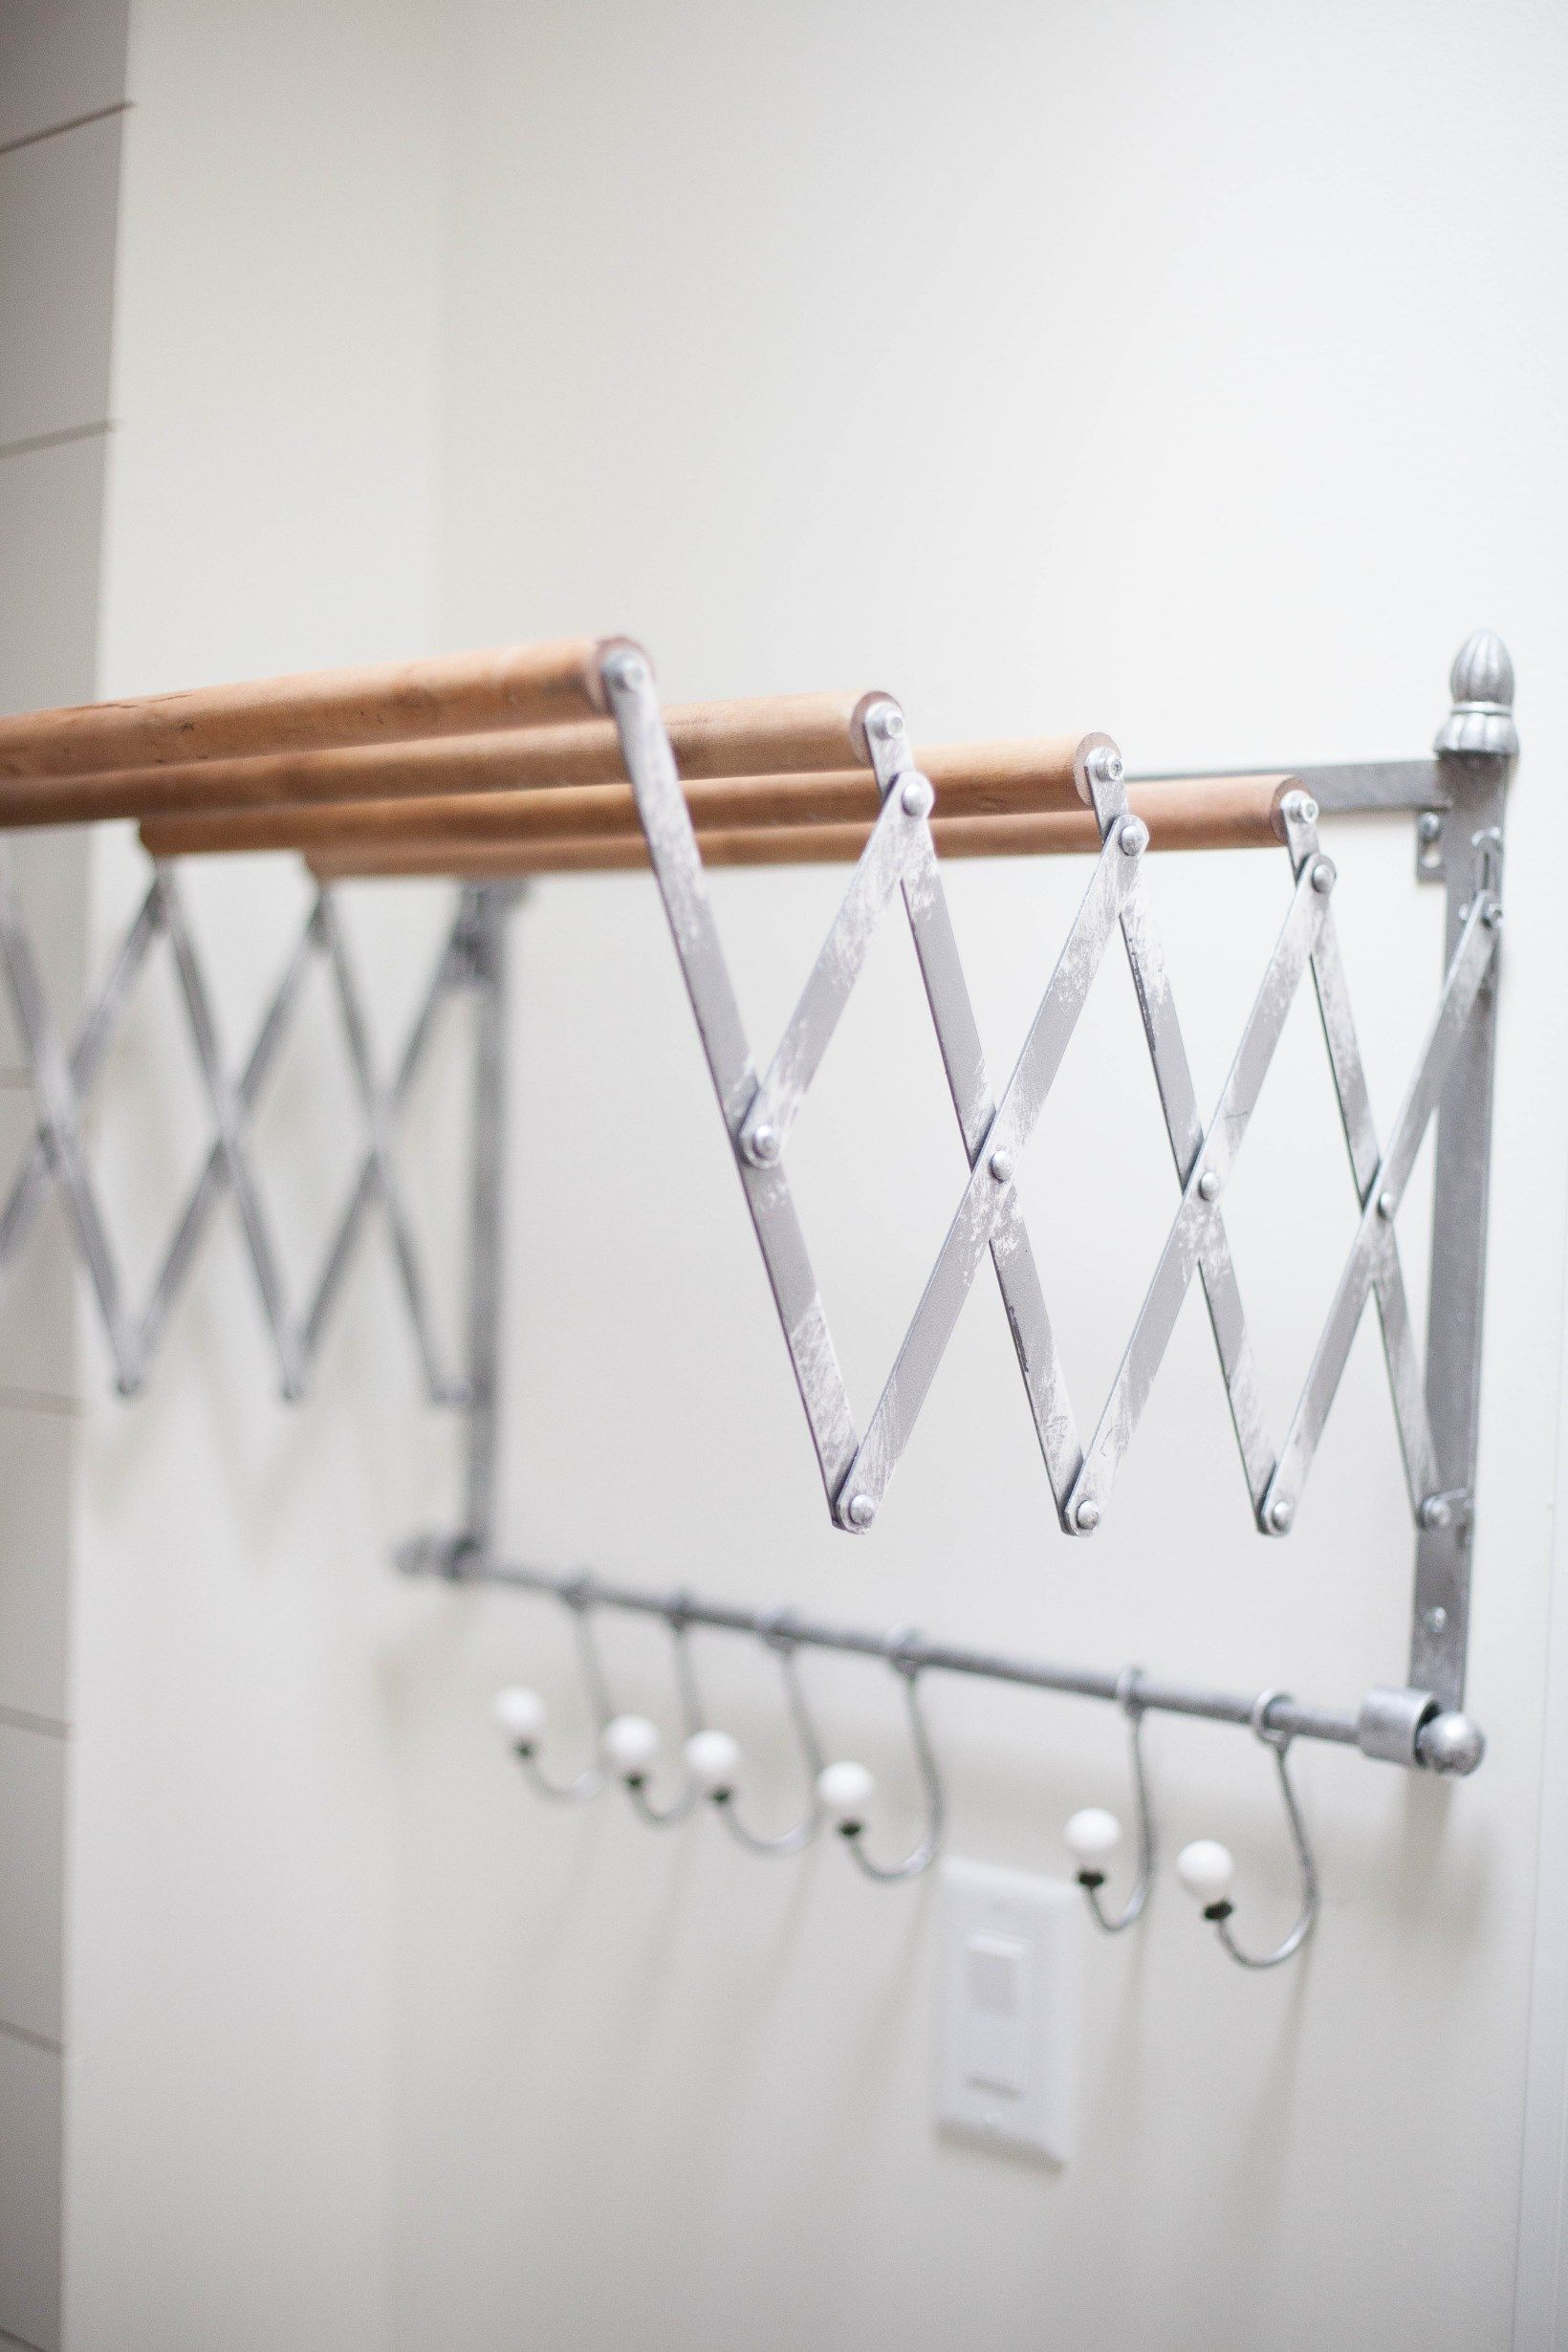 This Accordion Wall Drying Rack Is Fun And Functional For